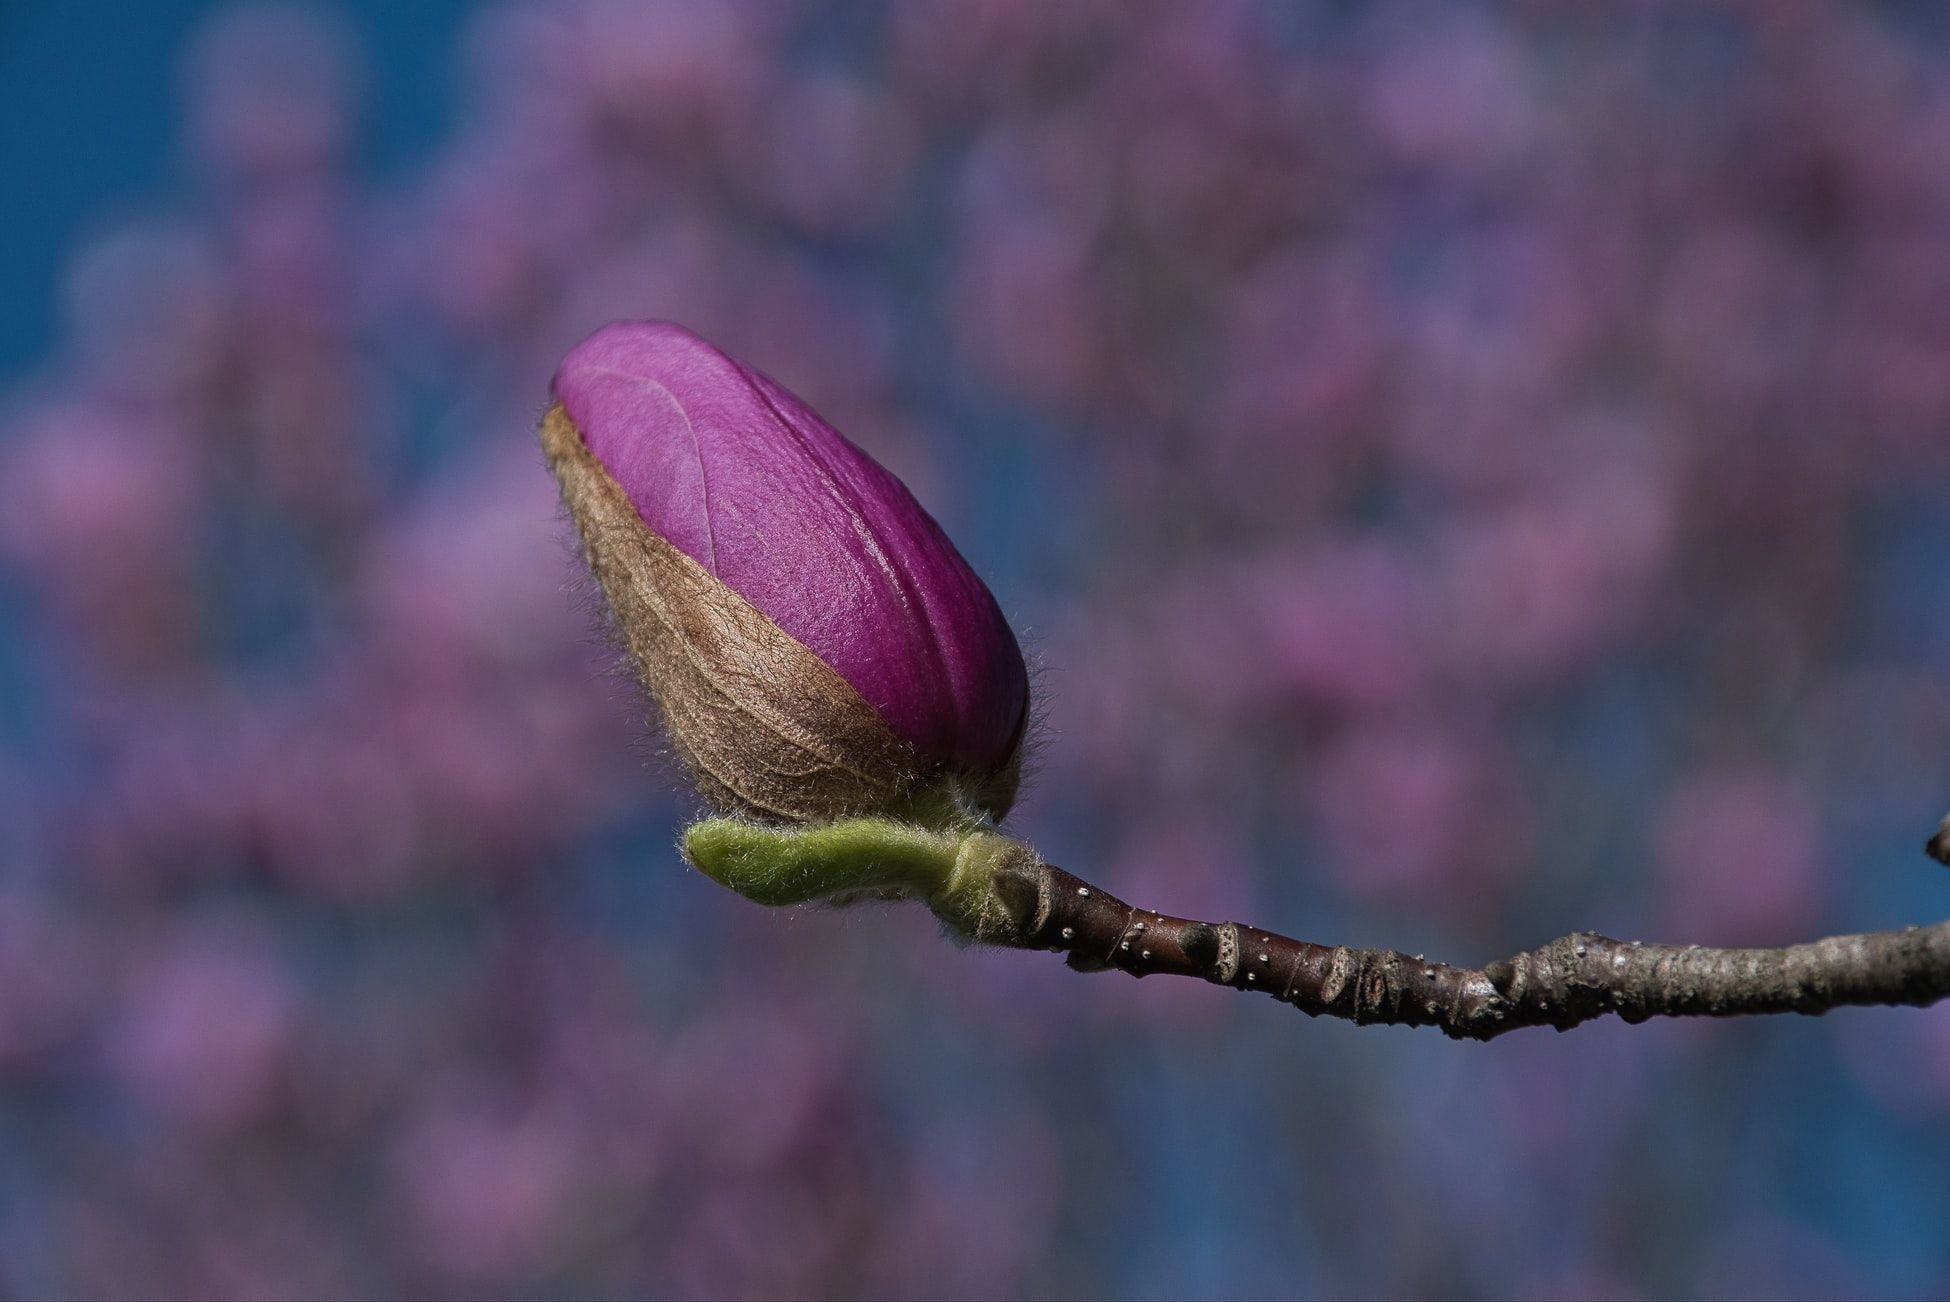 to show a flower blooming from a tiny bud